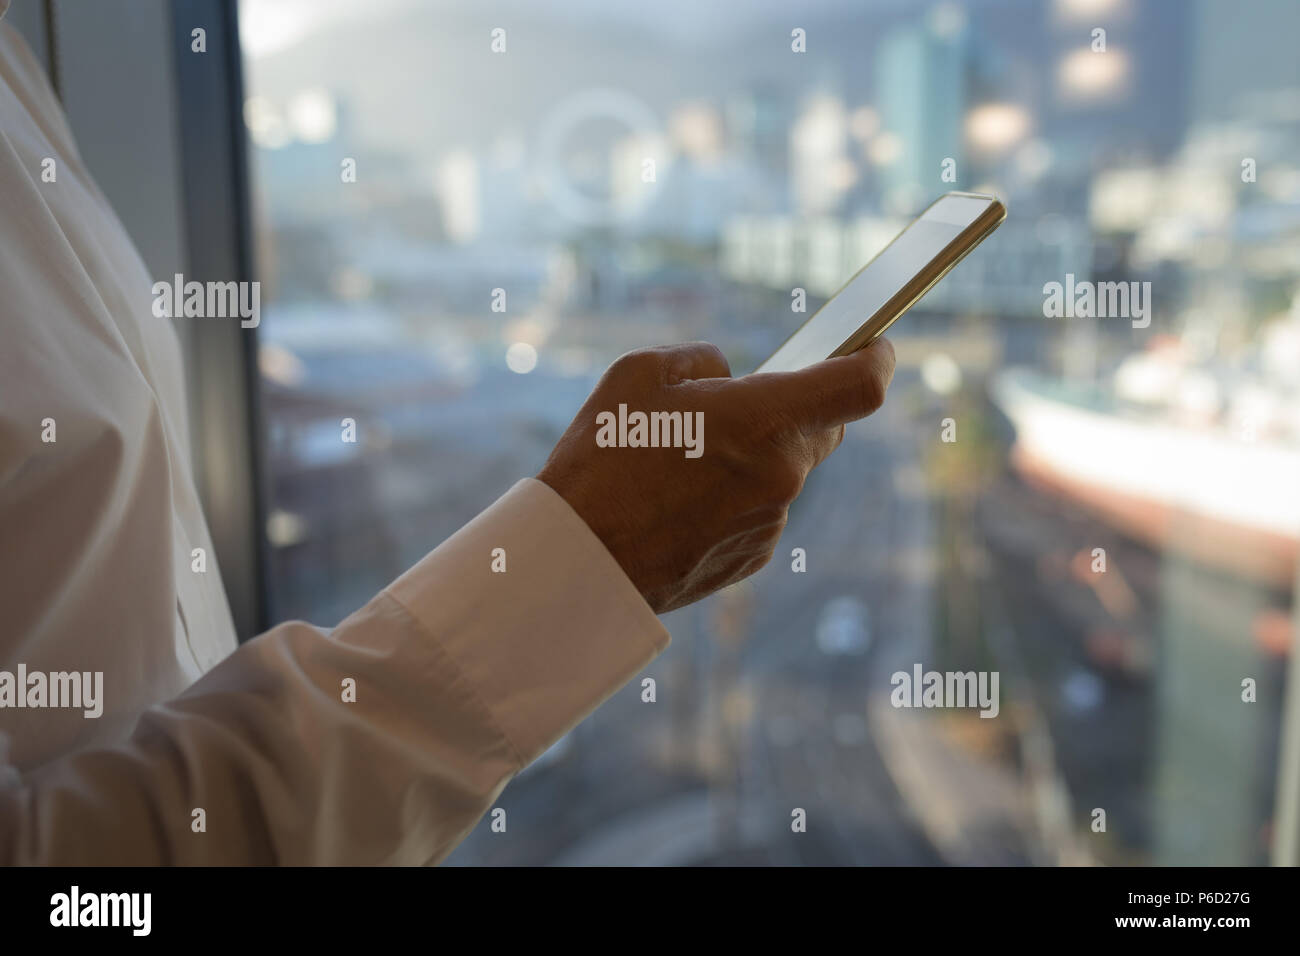 Businessman using smart phone in hotel room - Stock Image